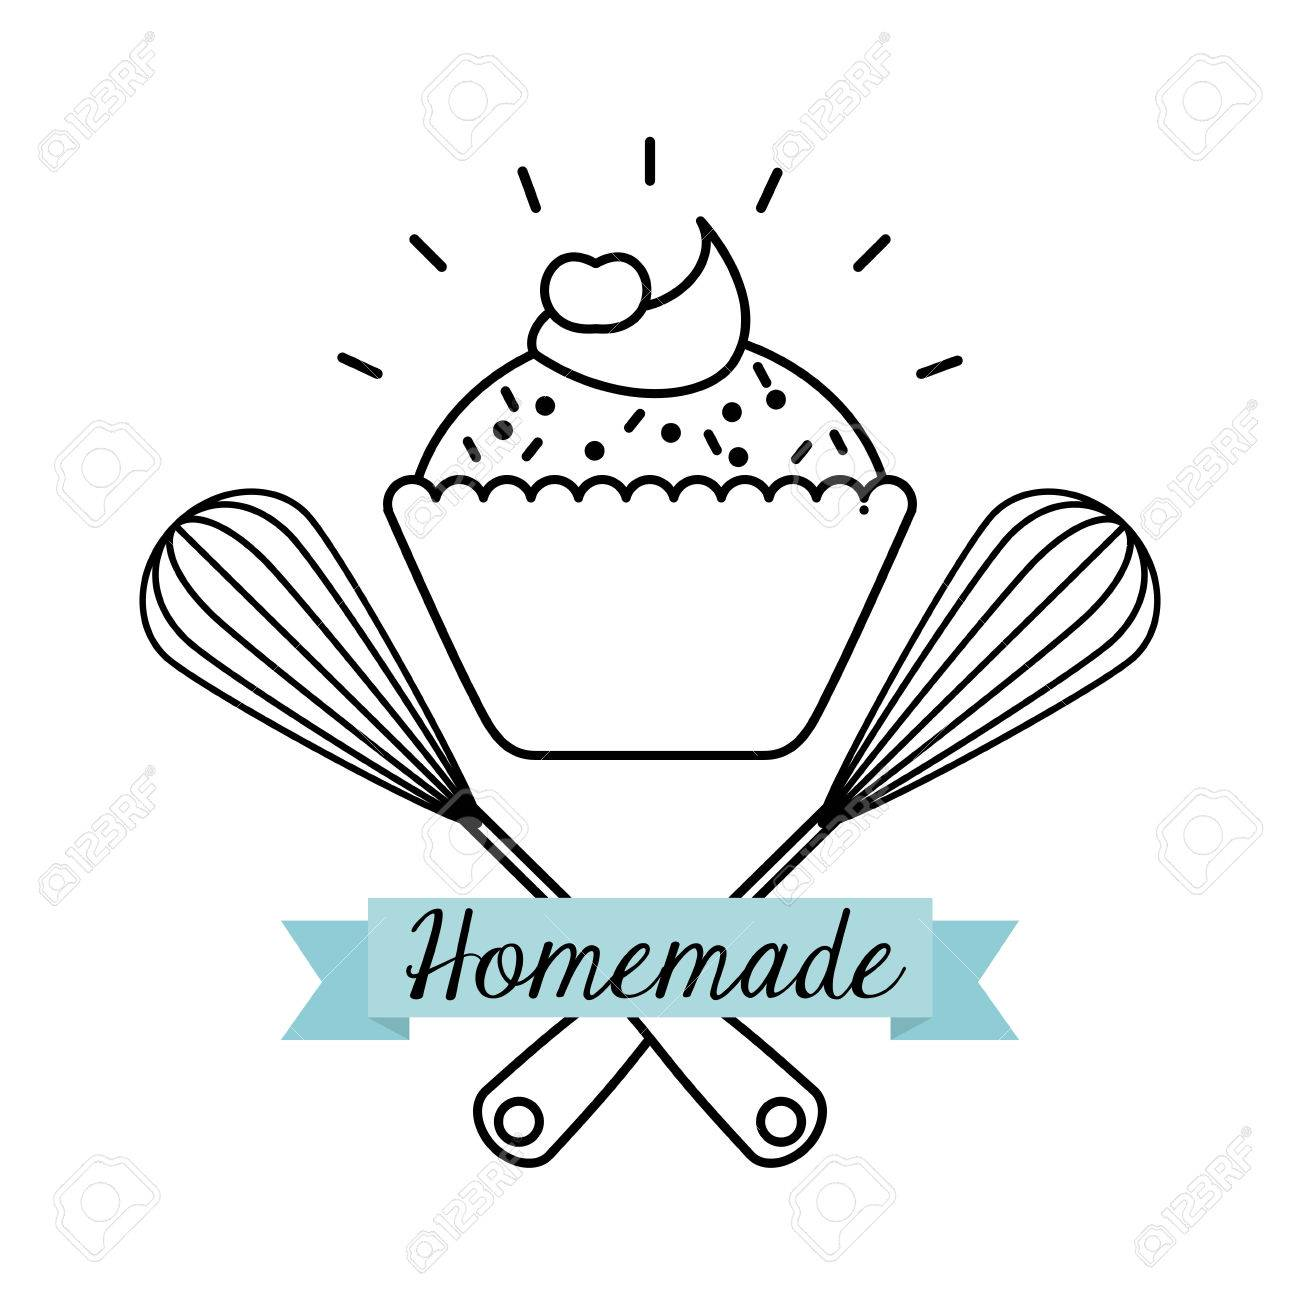 Homemade Food Design Vector Illustration Graphic Royalty Free